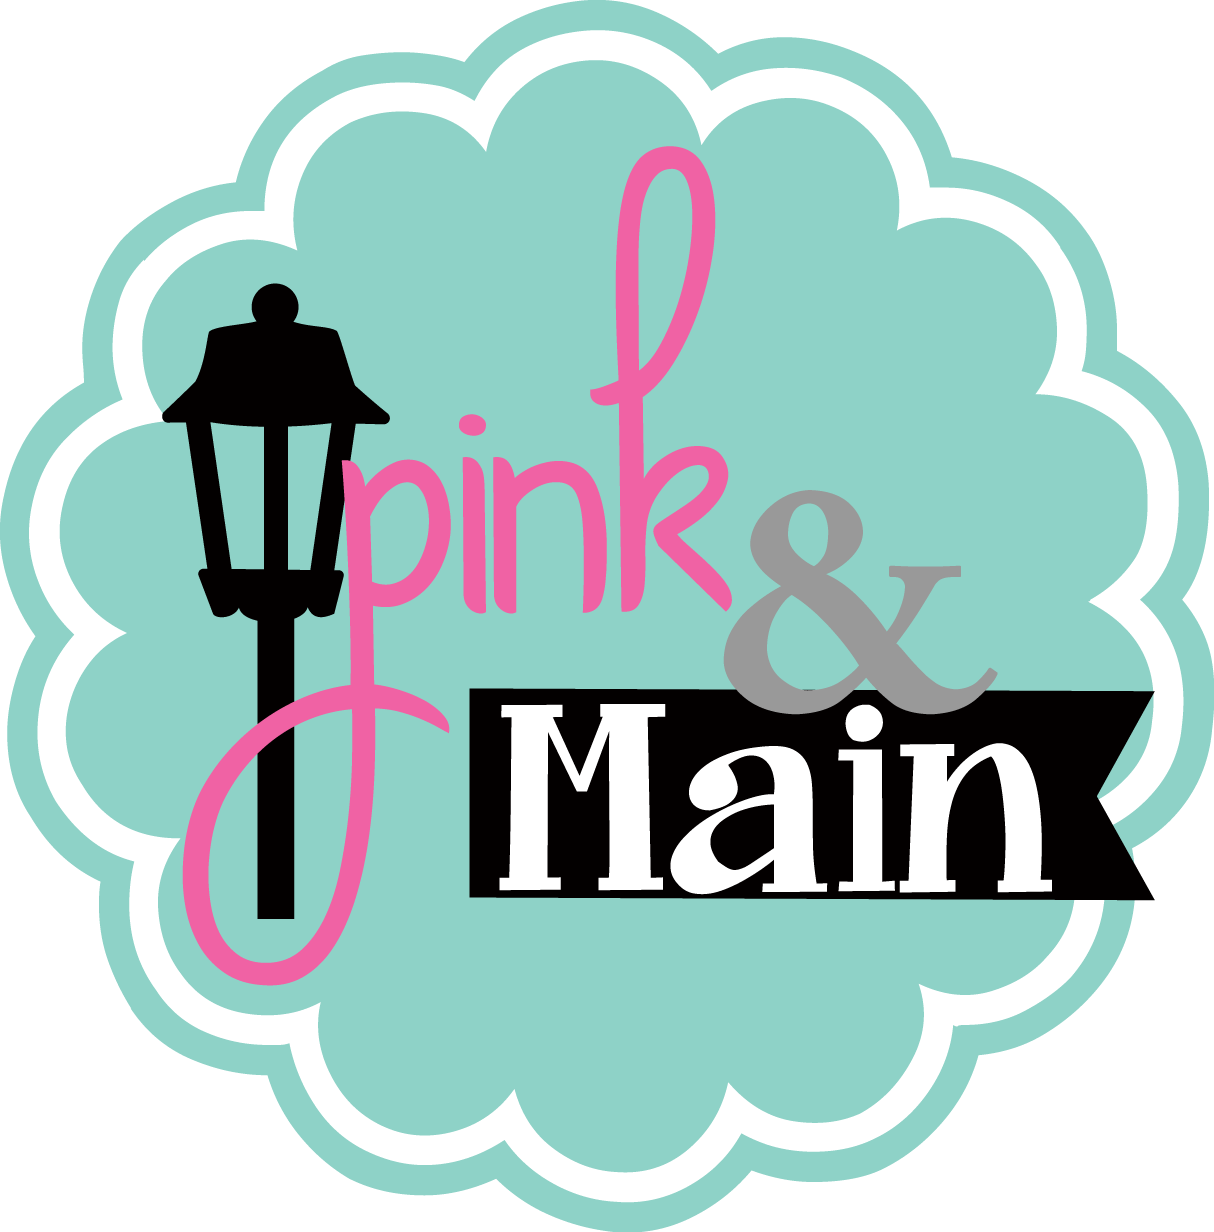 Shop Pink and Main Stamps